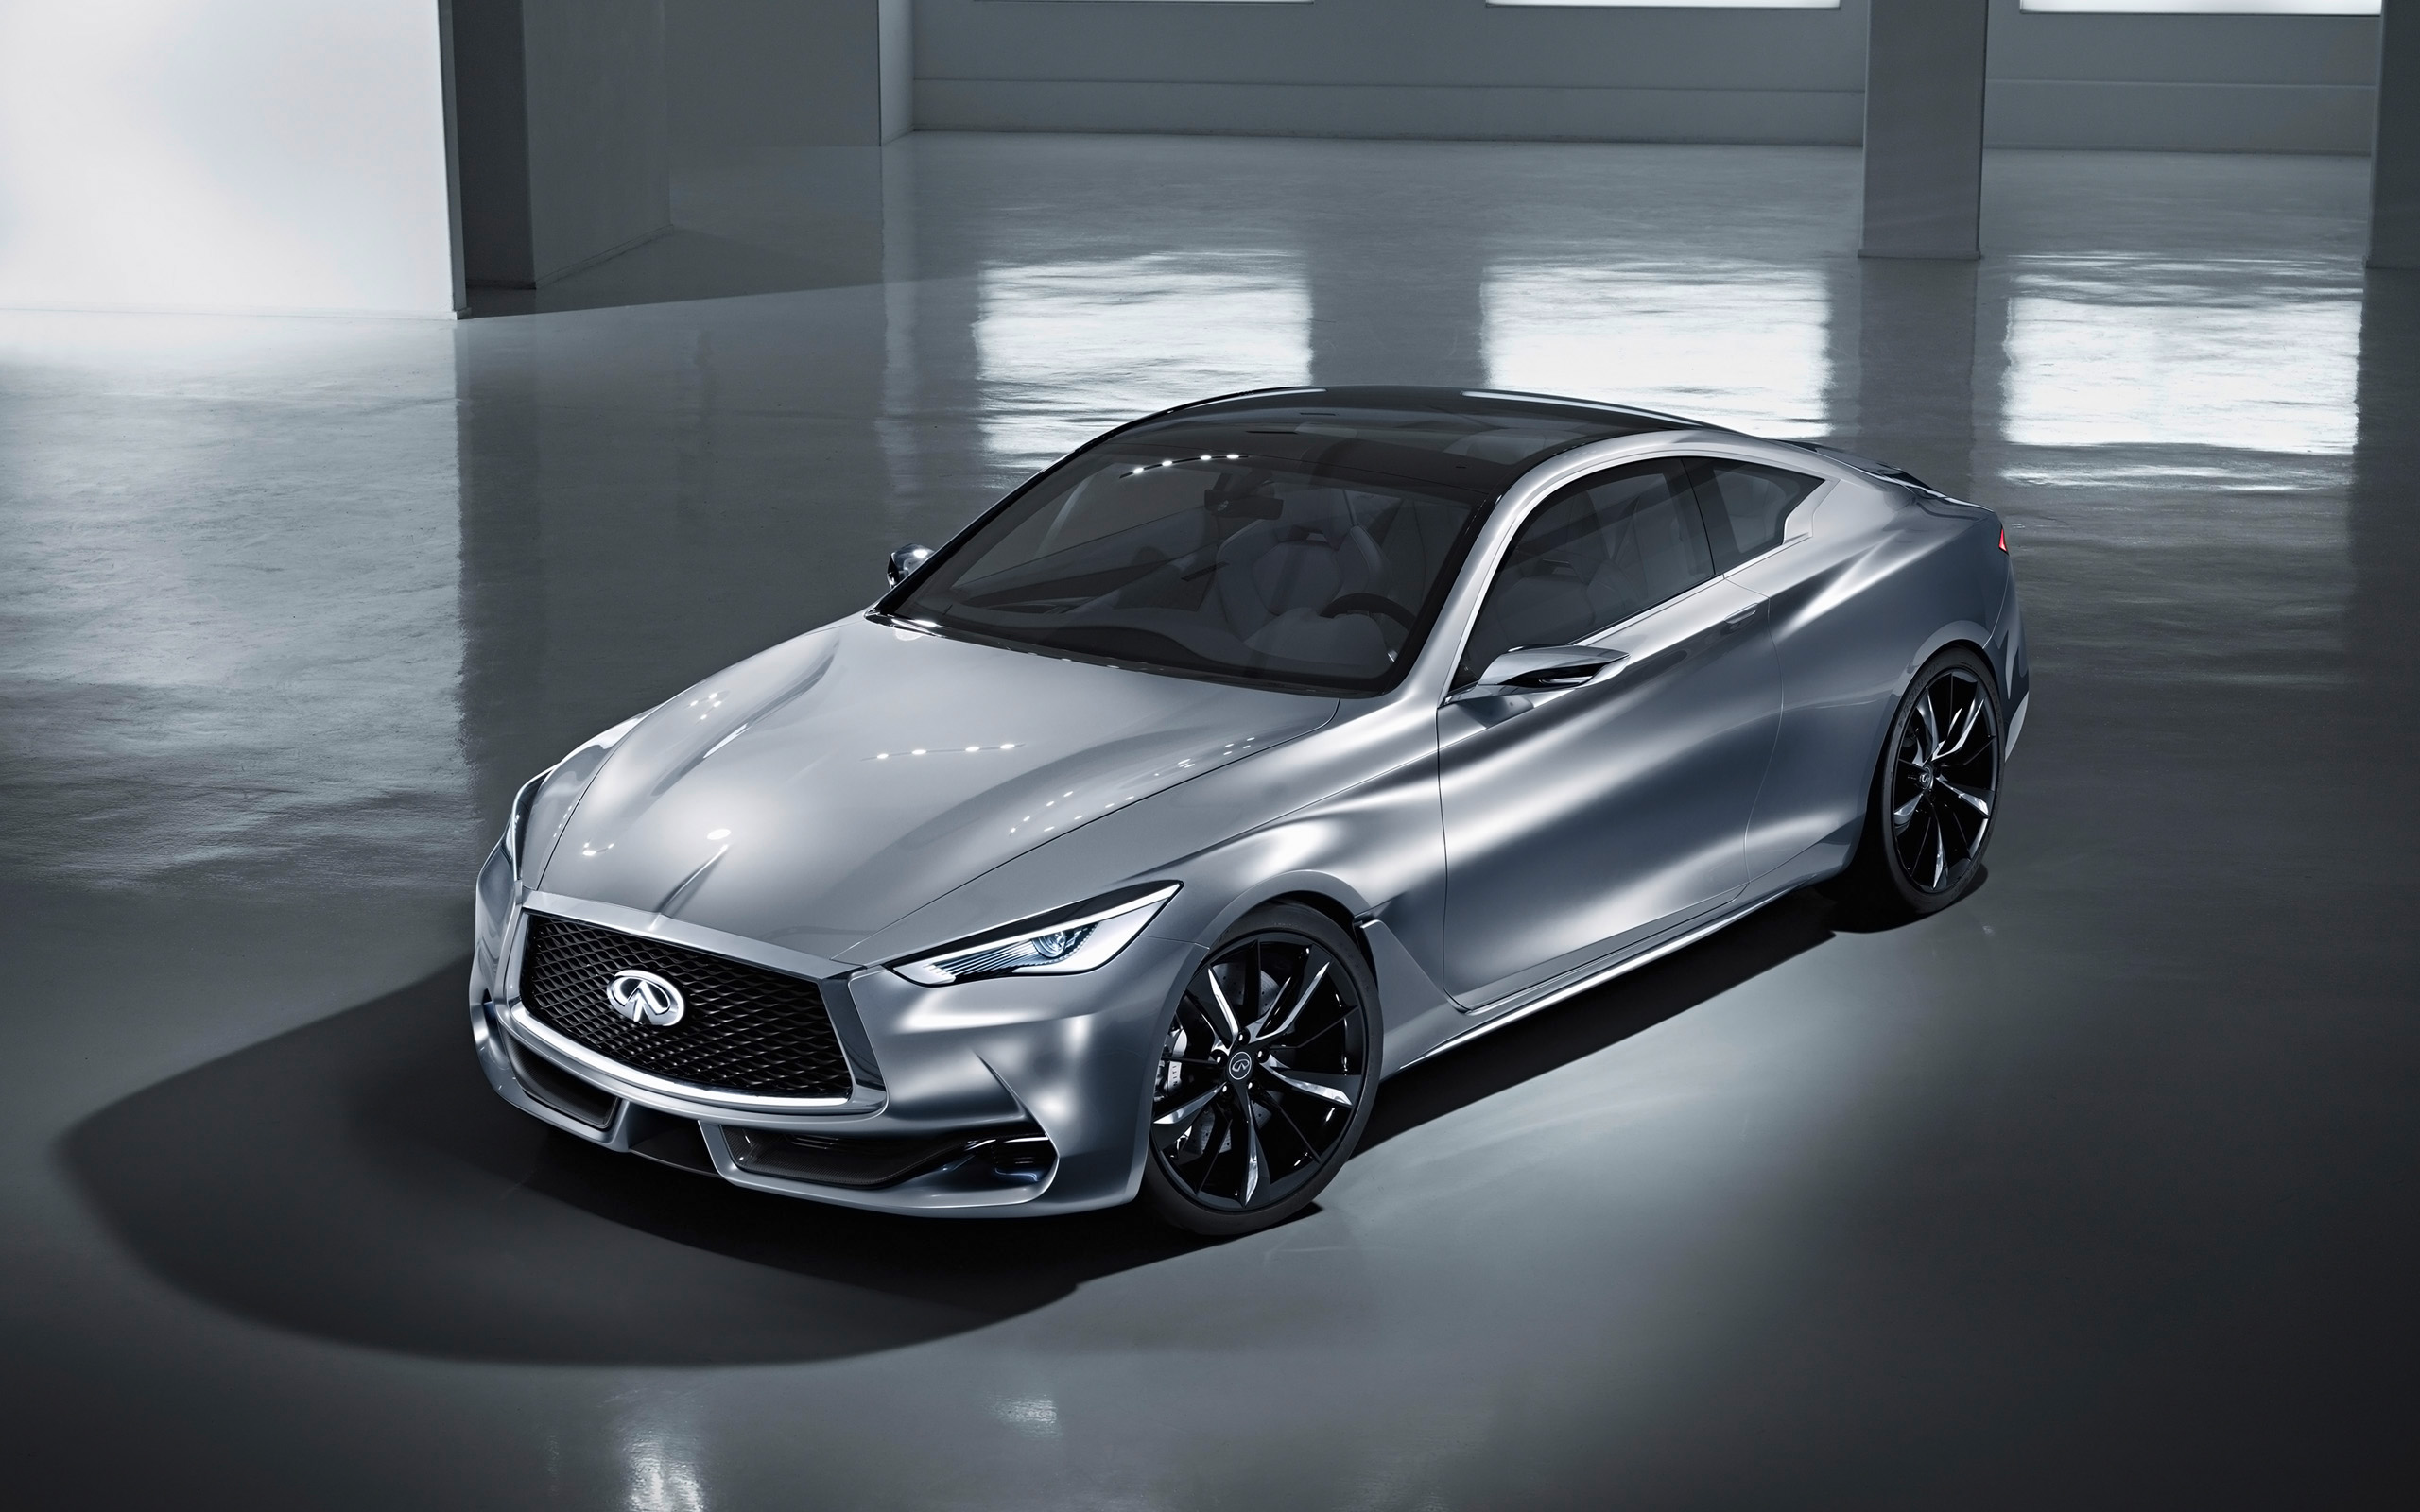 Car Wallpapers 4k Bentely 2015 Infiniti Q60 Wallpaper Hd Car Wallpapers Id 5064